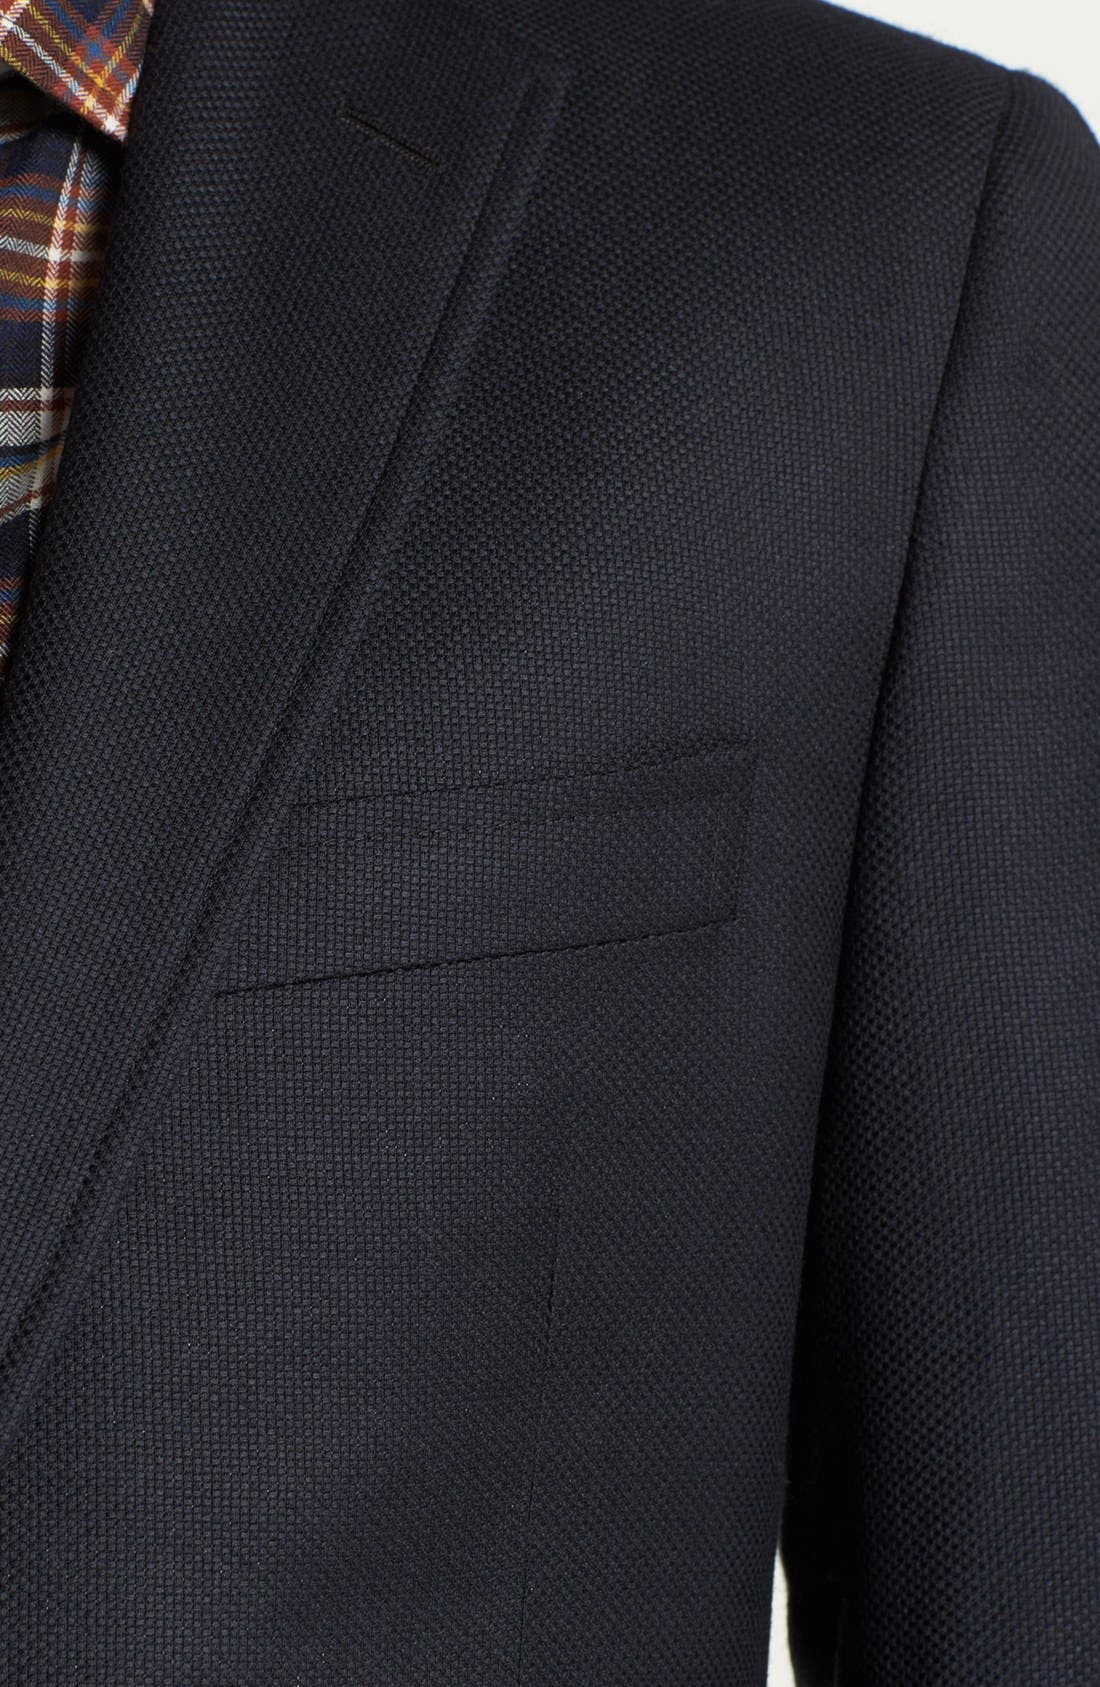 BILLY REID,                             'Campbell' Wool Sportcoat,                             Alternate thumbnail 3, color,                             410